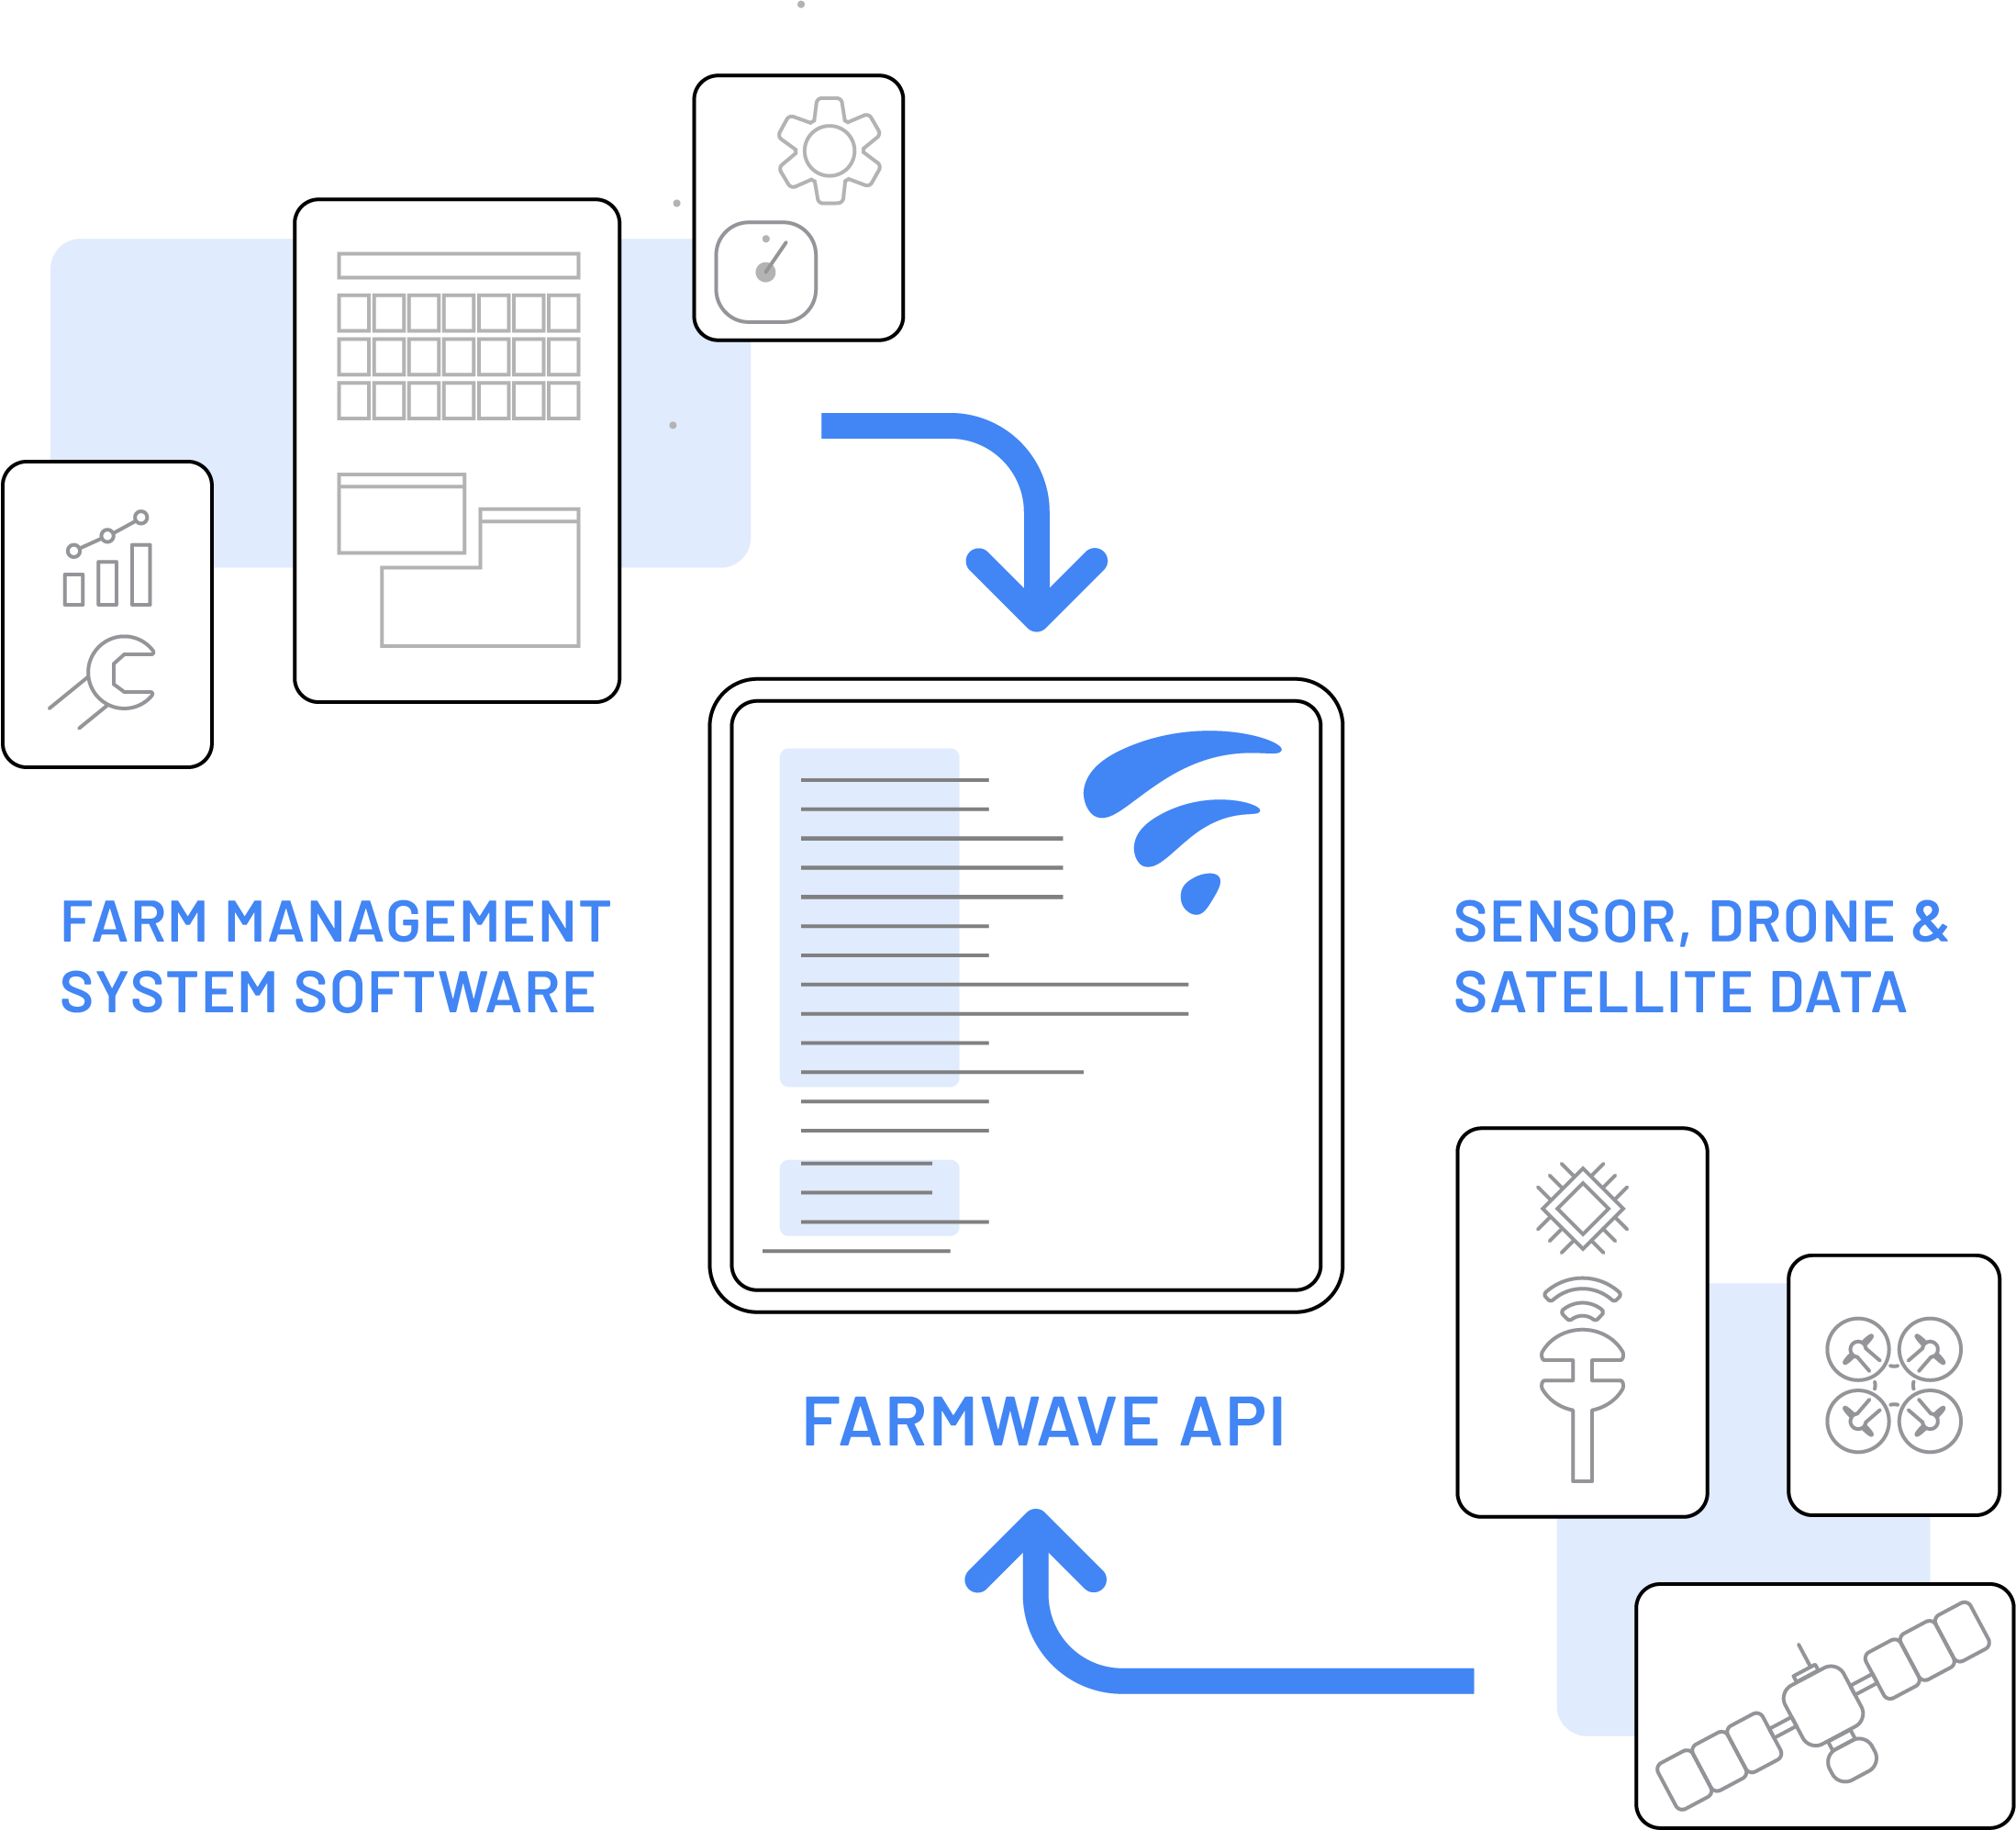 This illustration shows farm management system software and sensor, drone and satellite data being sent to Farmwave.